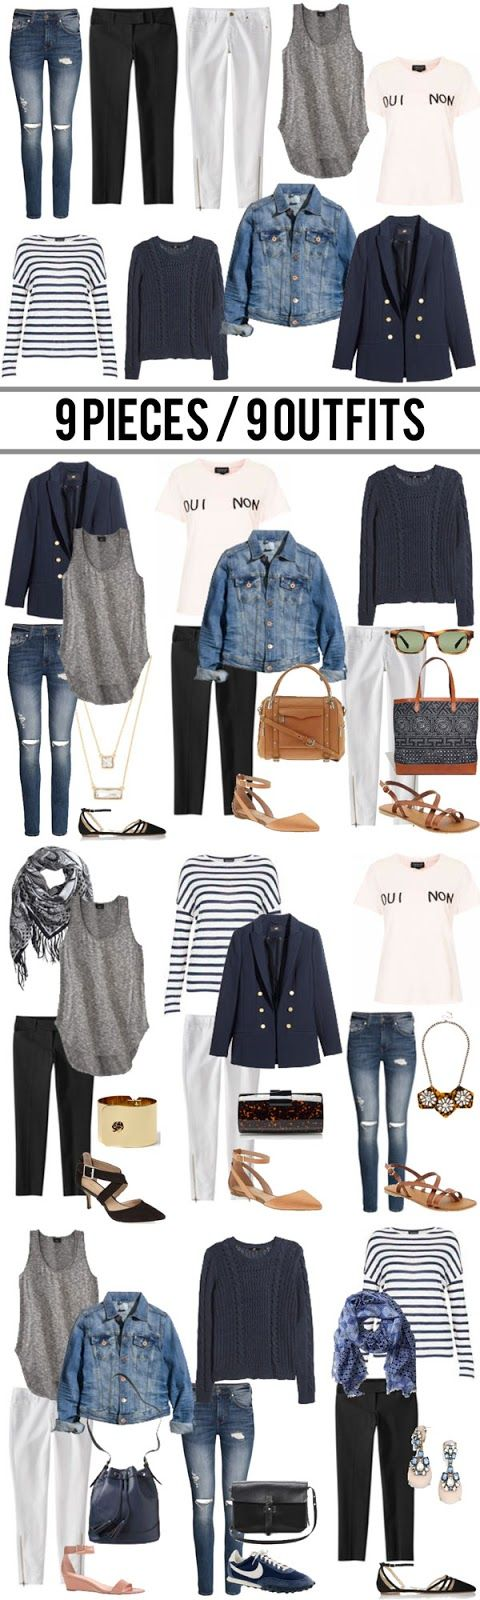 jillgg's good life (for less) | a style blog: 9 pieces / 9 outfits. Great Tip! I'm all about #versatility